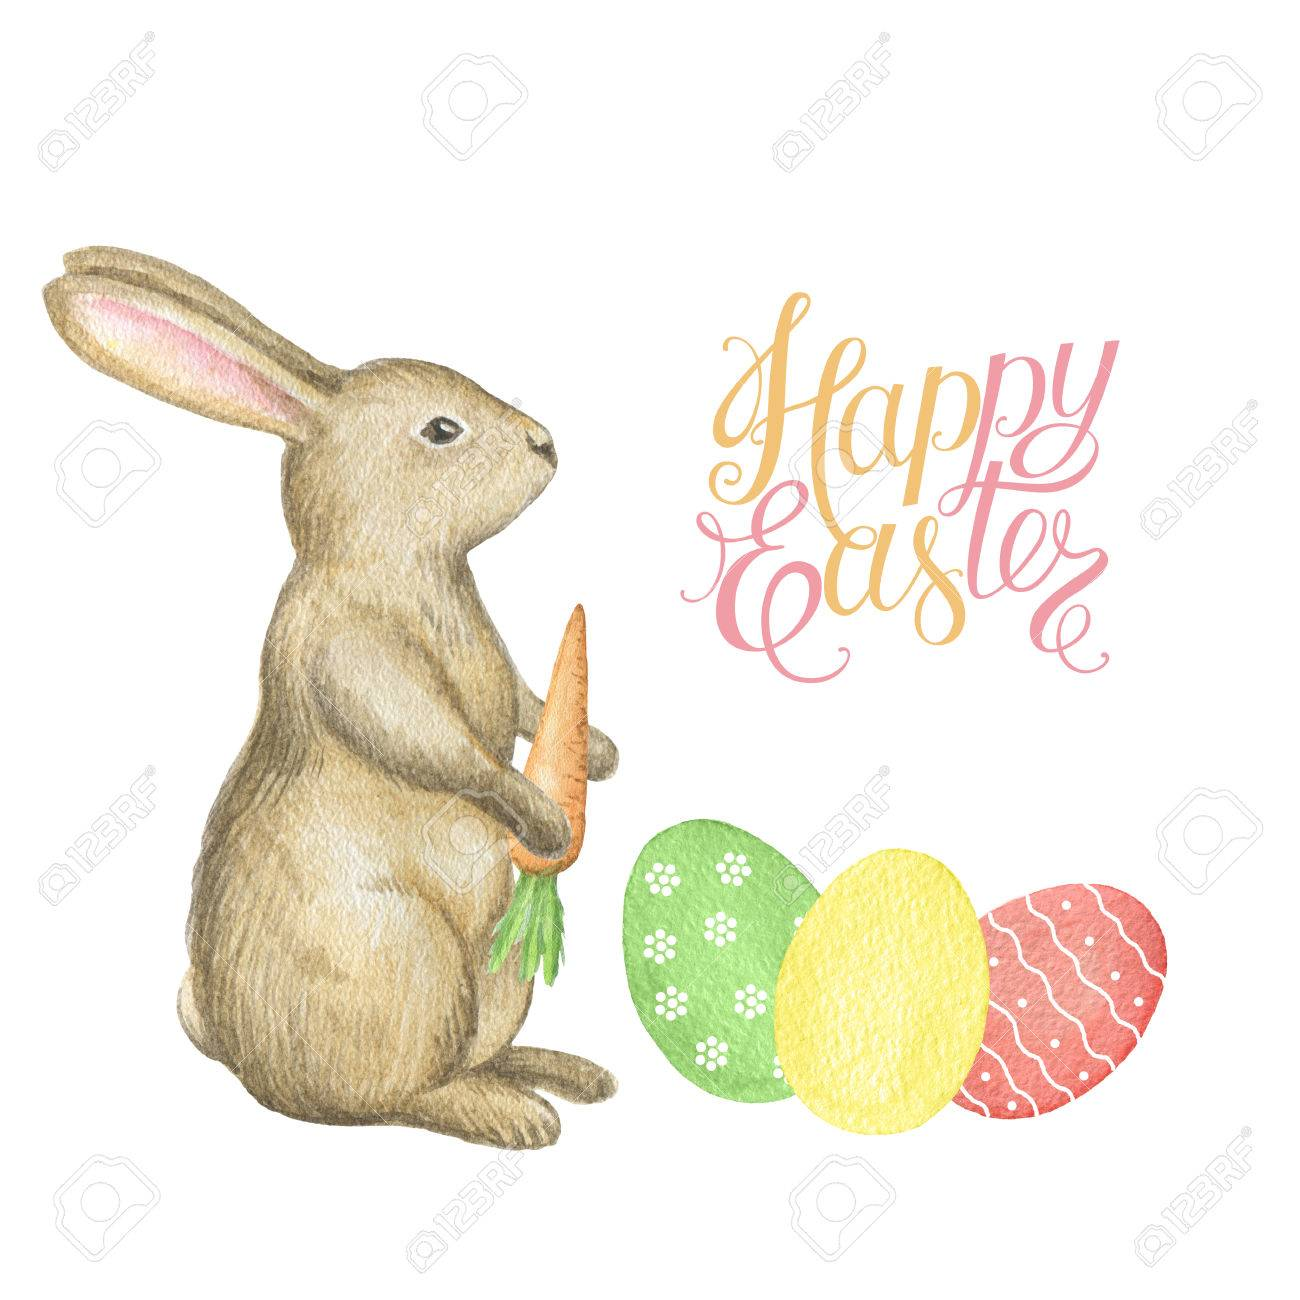 Happy easter watercolor rabbit eggs and a letter template for happy easter watercolor rabbit eggs and a letter template for greeting cards and invitations spiritdancerdesigns Choice Image